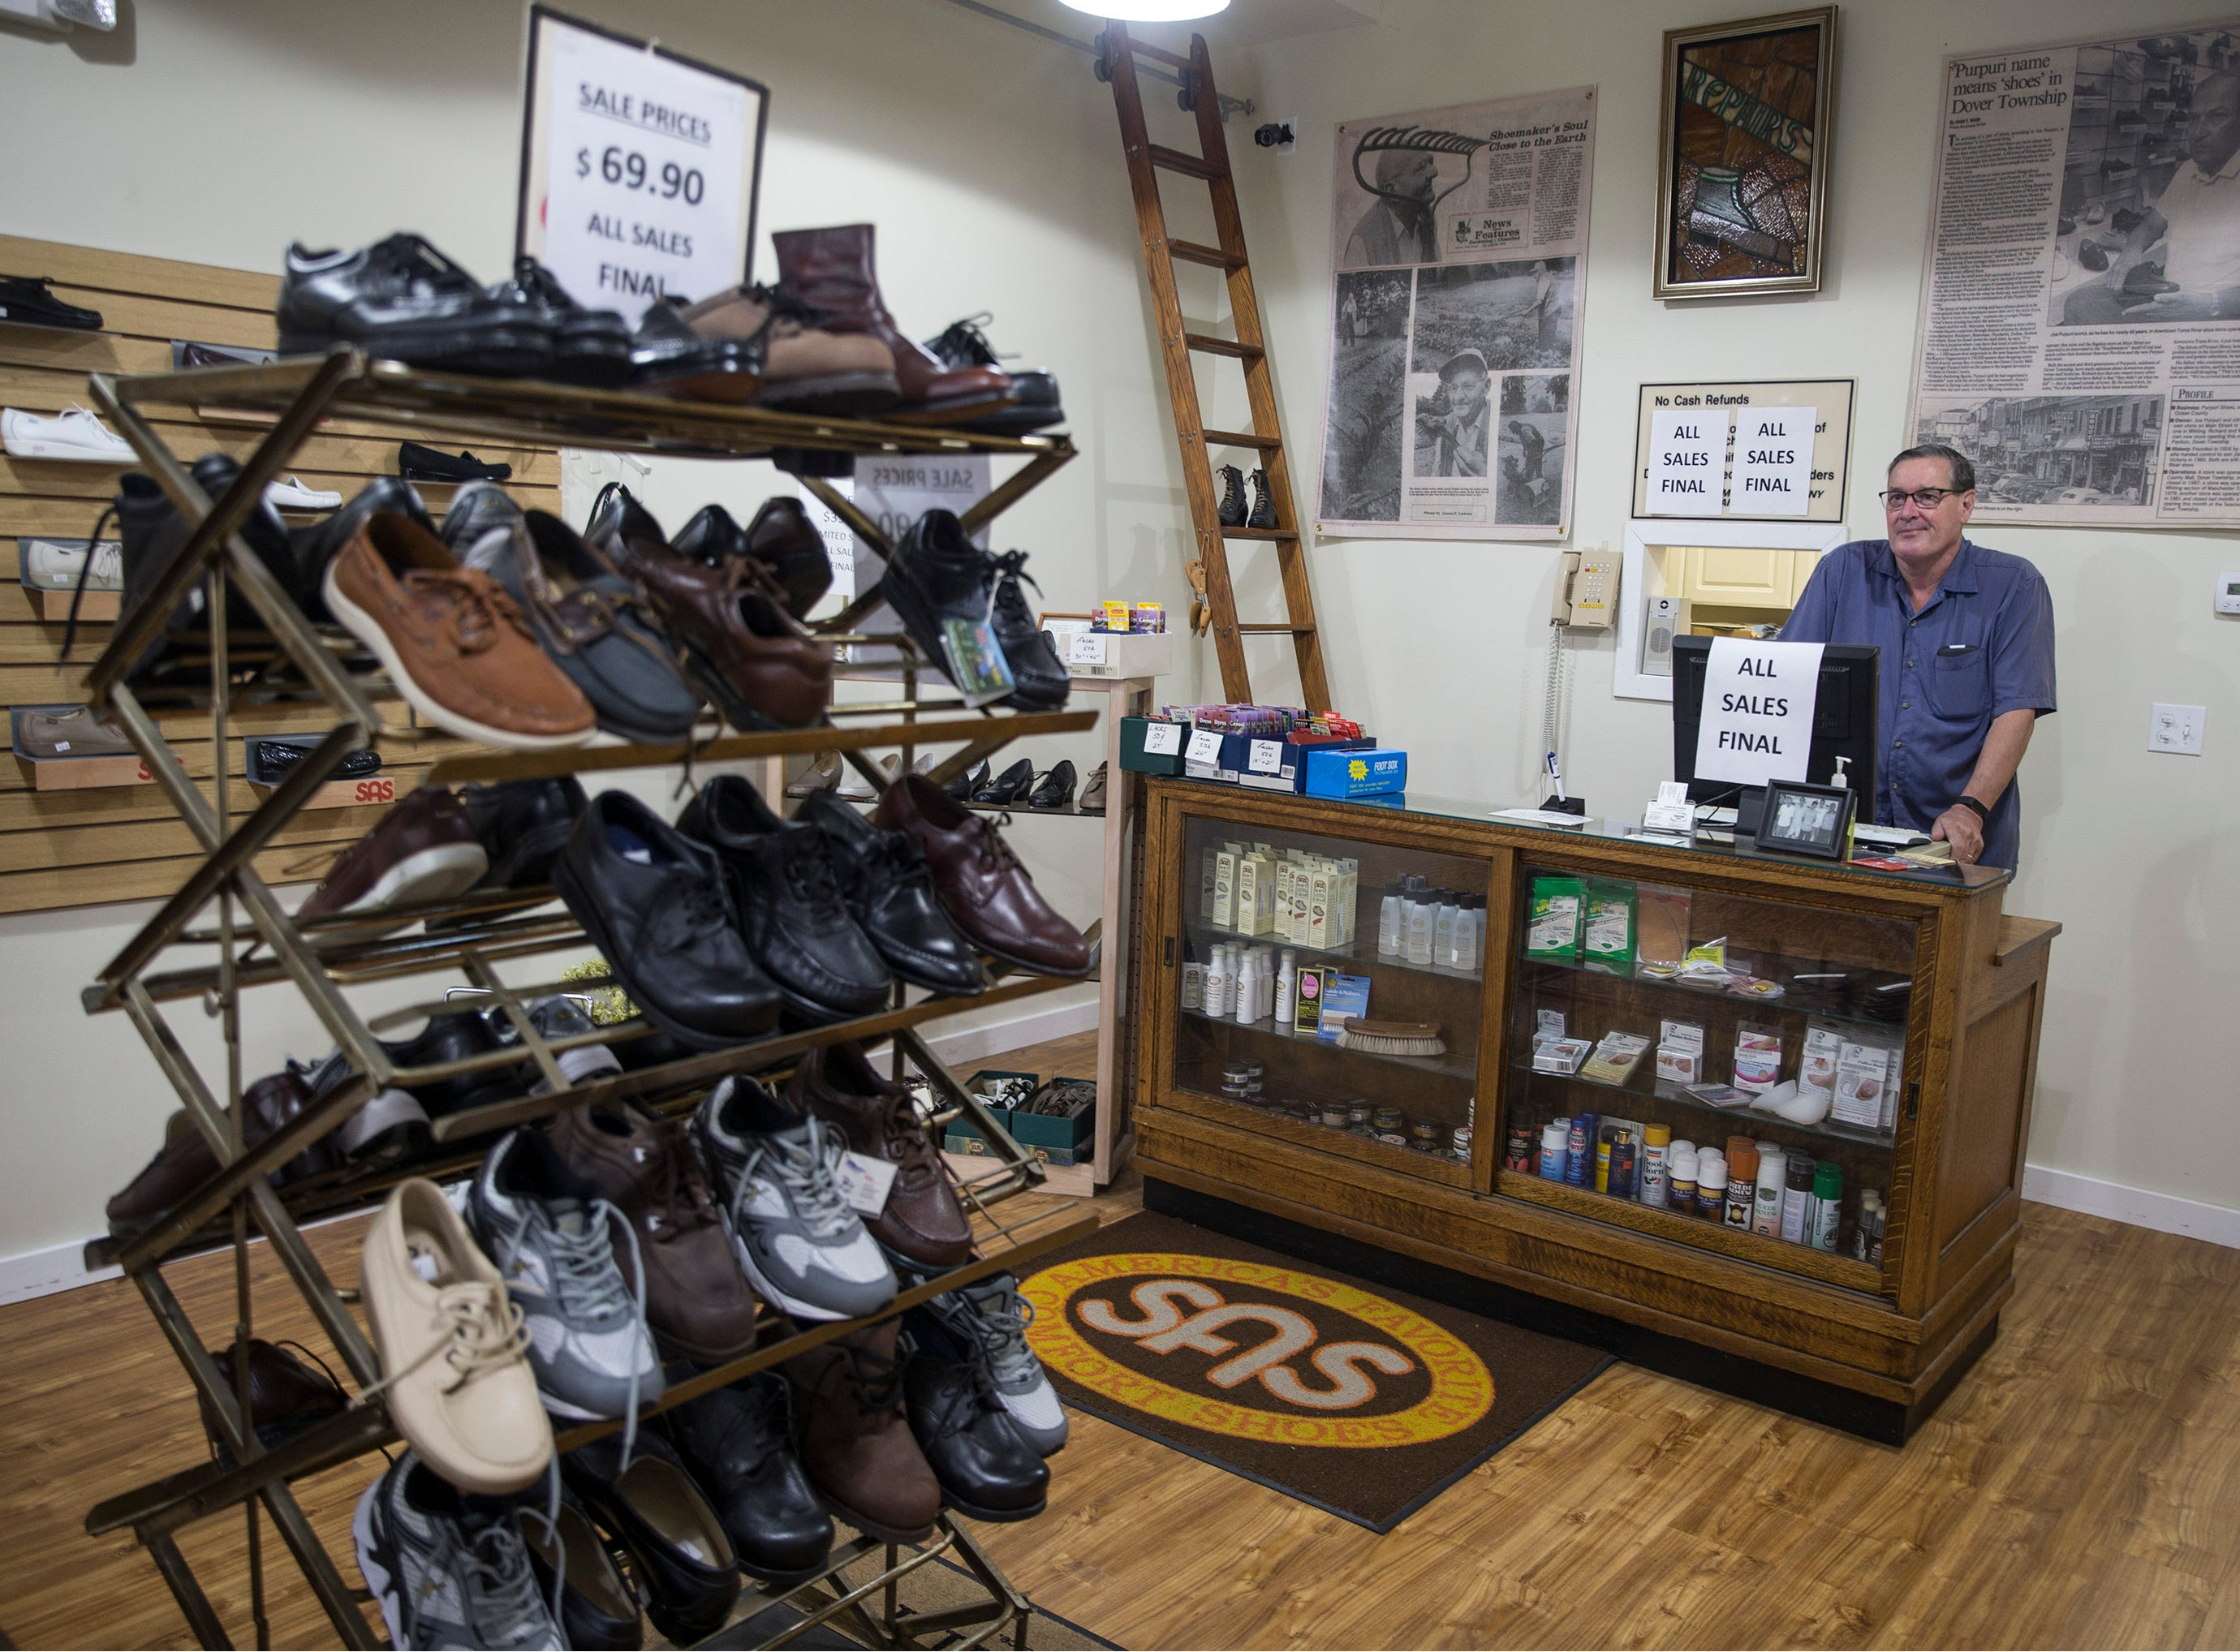 Purpuri Shoes, a family-owned store in Toms River, is closing after 102 years in business. Store owner Rick Purpuri is has decided to retire after being in the business for 43 years. 